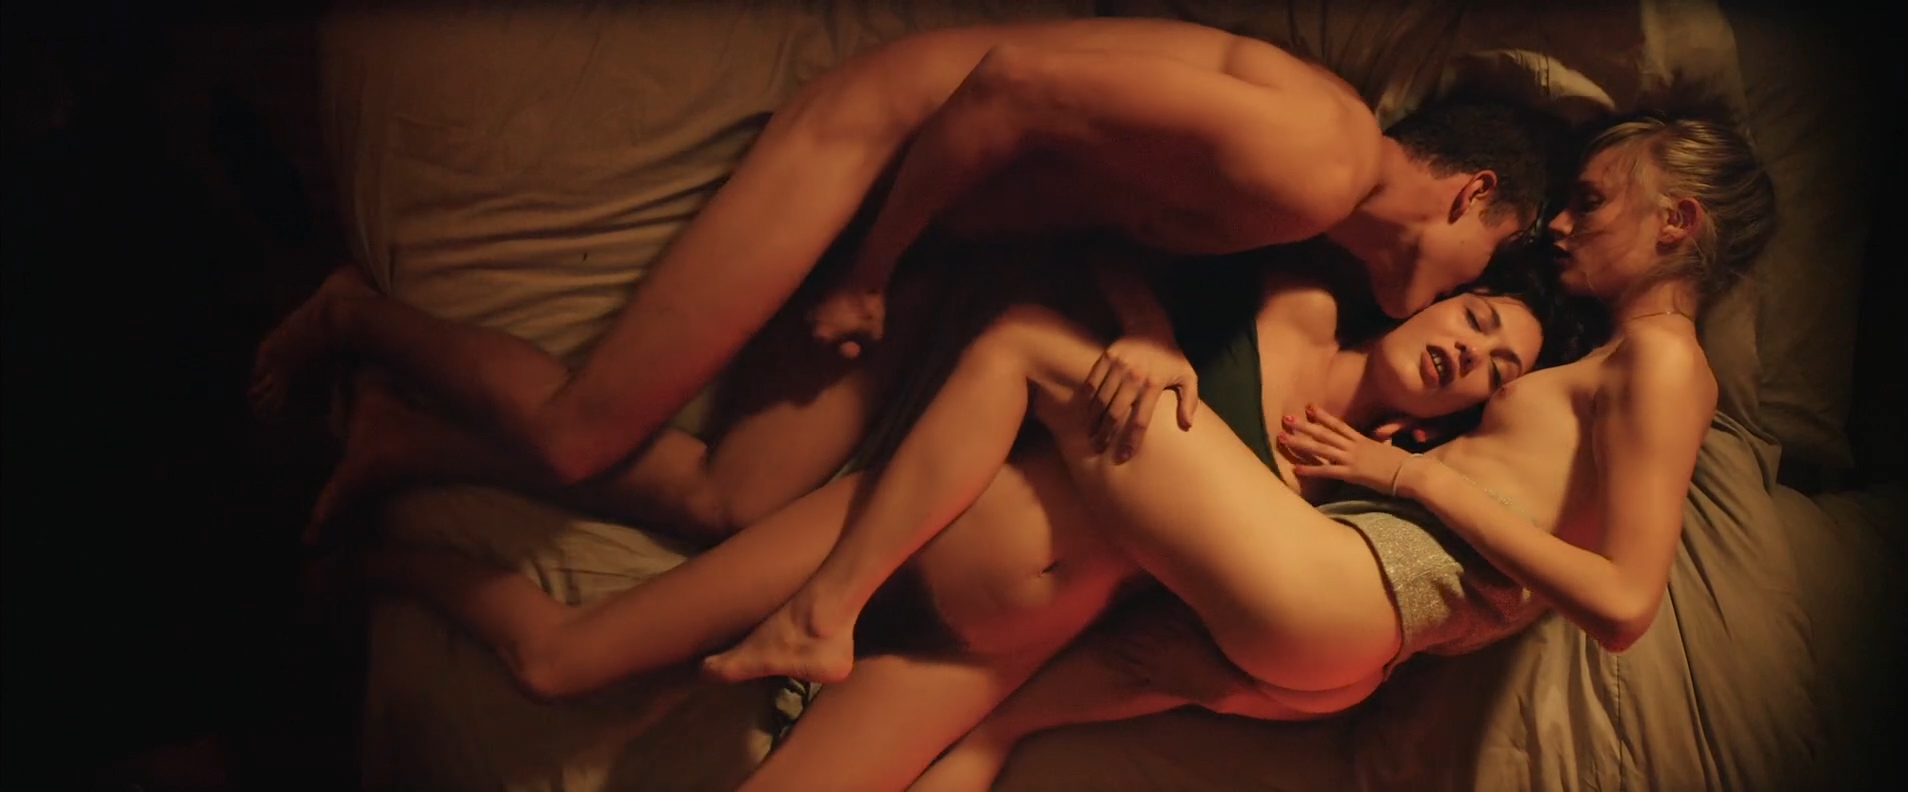 Explicit picture sex scene